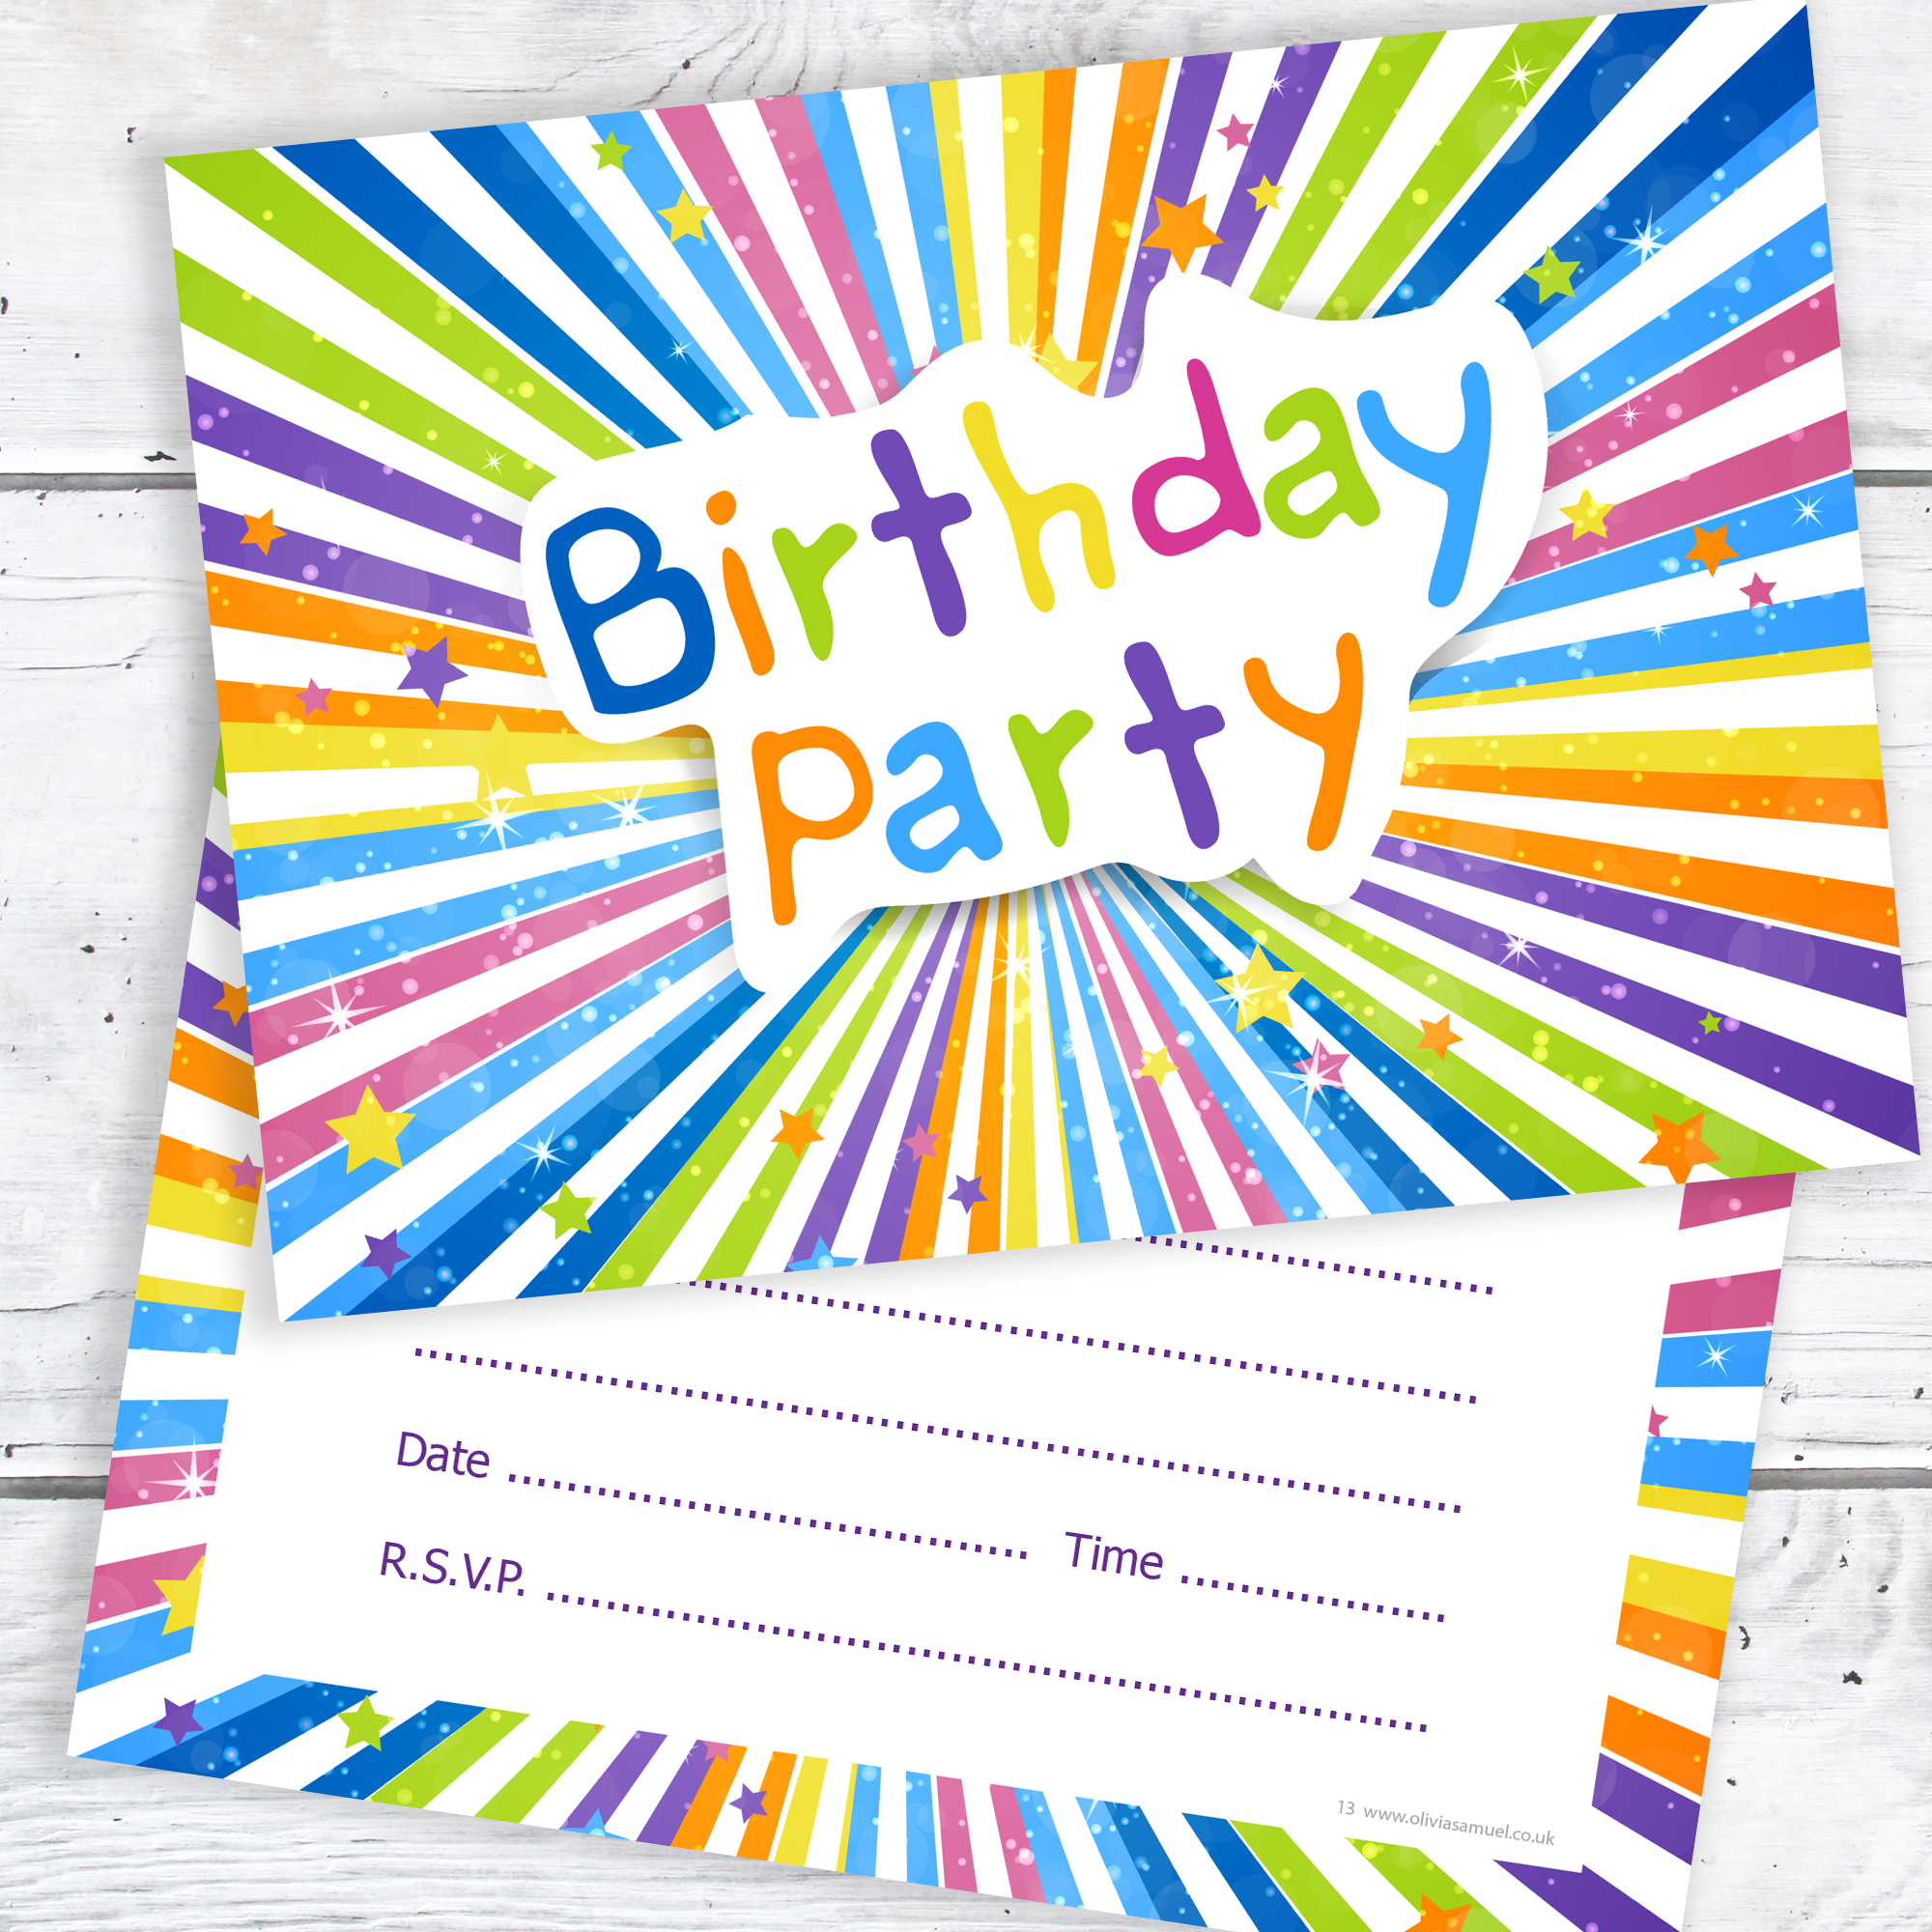 Childrens Birthday Party Invitations Kids Ready To Write Invites A6 Postcard Size With Envelopes Pack Of 10